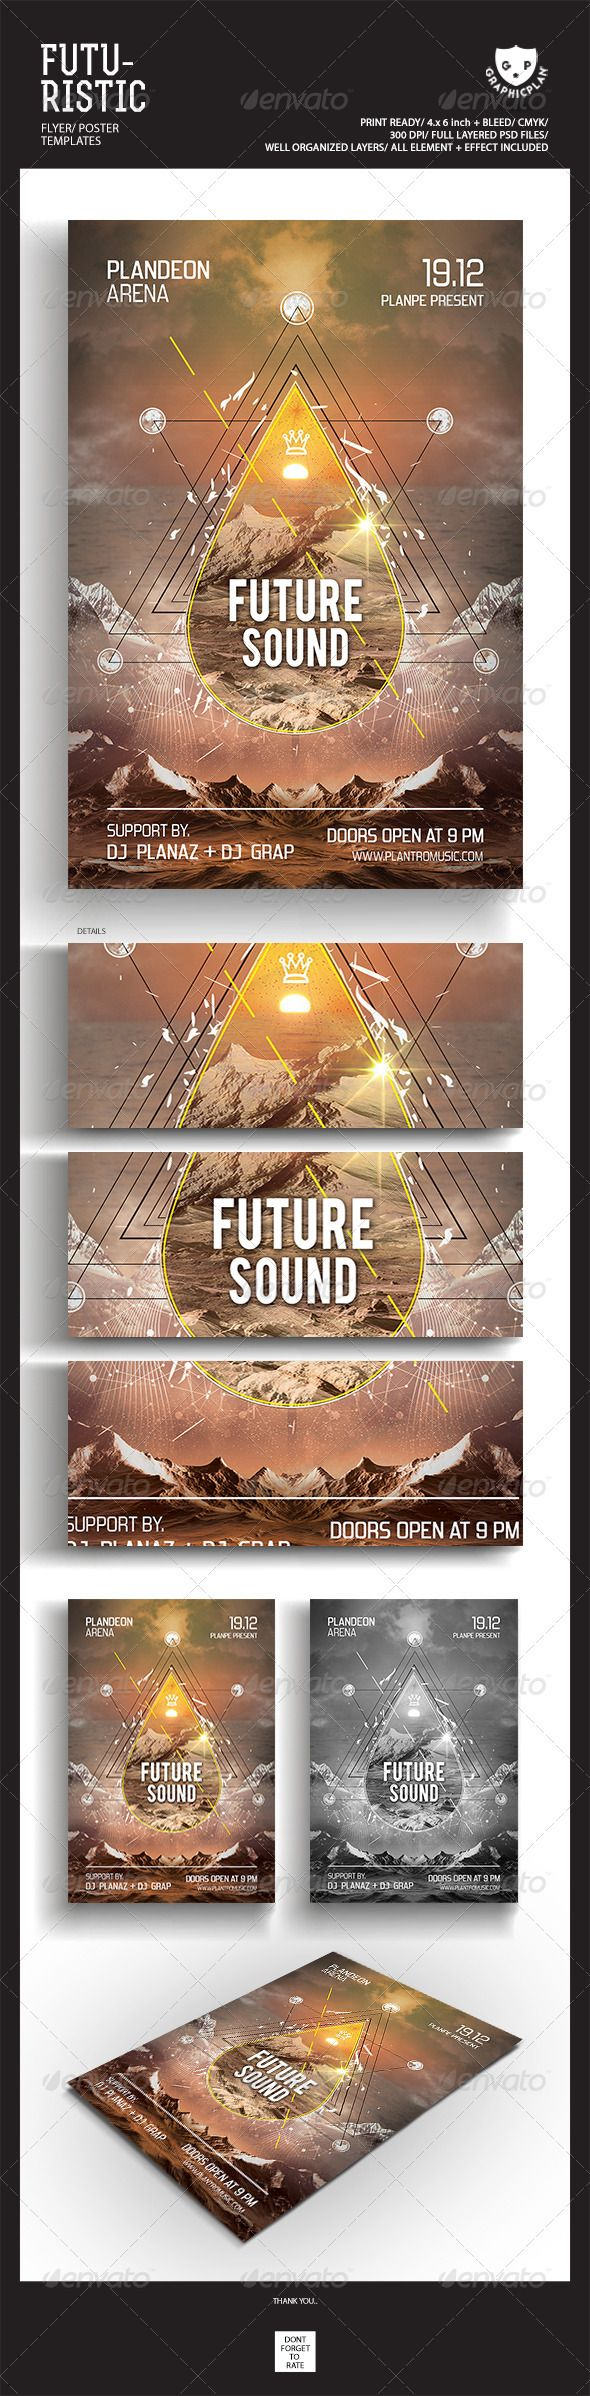 "Futuristic Flyer Poster Templates #GraphicRiver Featured Flyers Flyer Artwork ""Future Sound"" This flyer was designed to promote an Electro / Dubstep / Dance / Drum and Bass / Techno / House music event, such as a gig, concert, festival, dj set, party or weekly event in a music club and other kind of special evenings. This flyer can also be used for a new album promotion or"